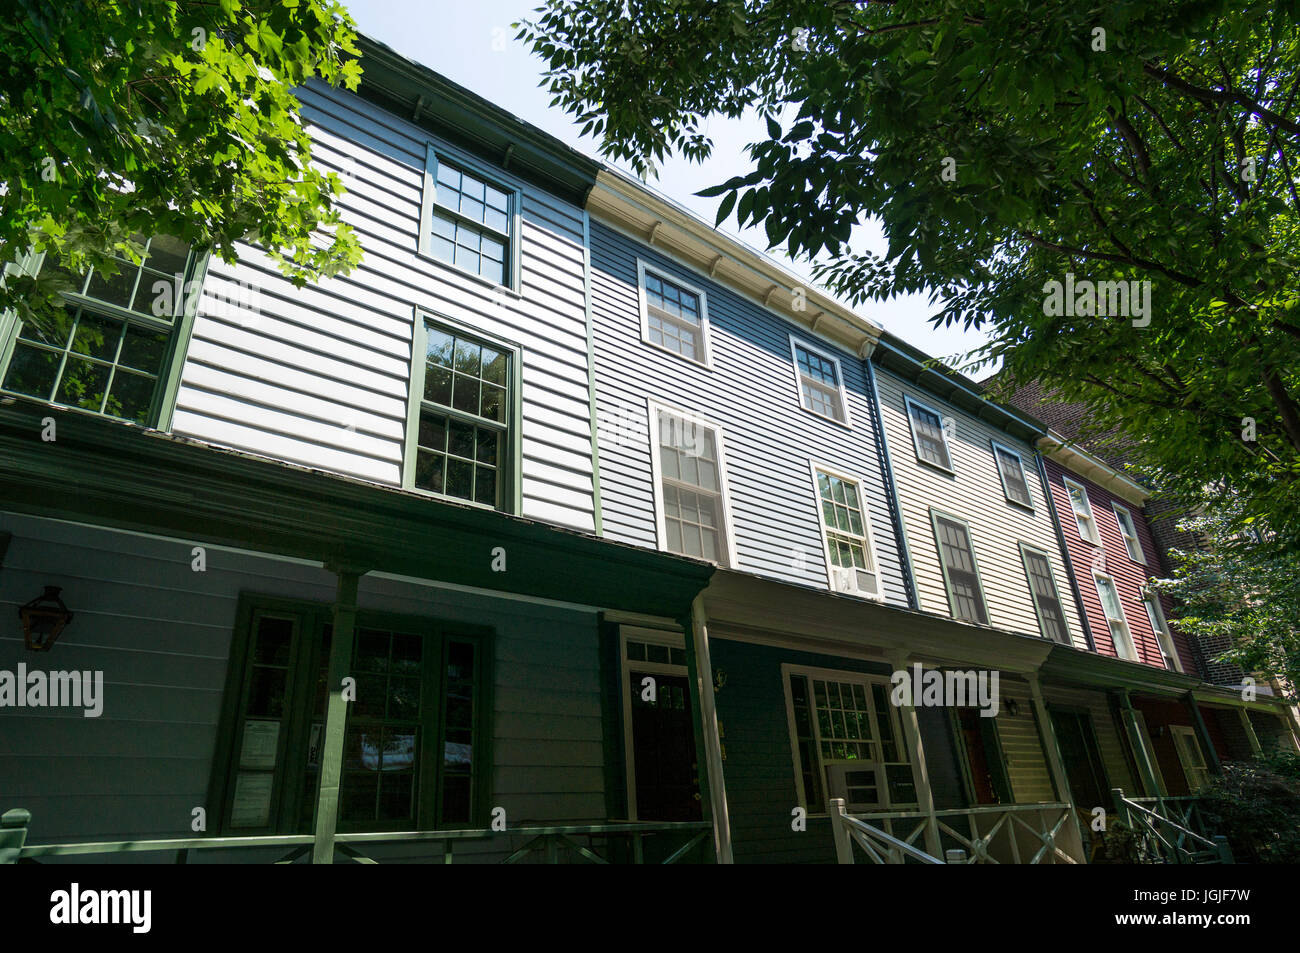 19th century row houses with wood siding and flat roofs on Columbia Place in the Brooklyn Heights in New York City - Stock Image